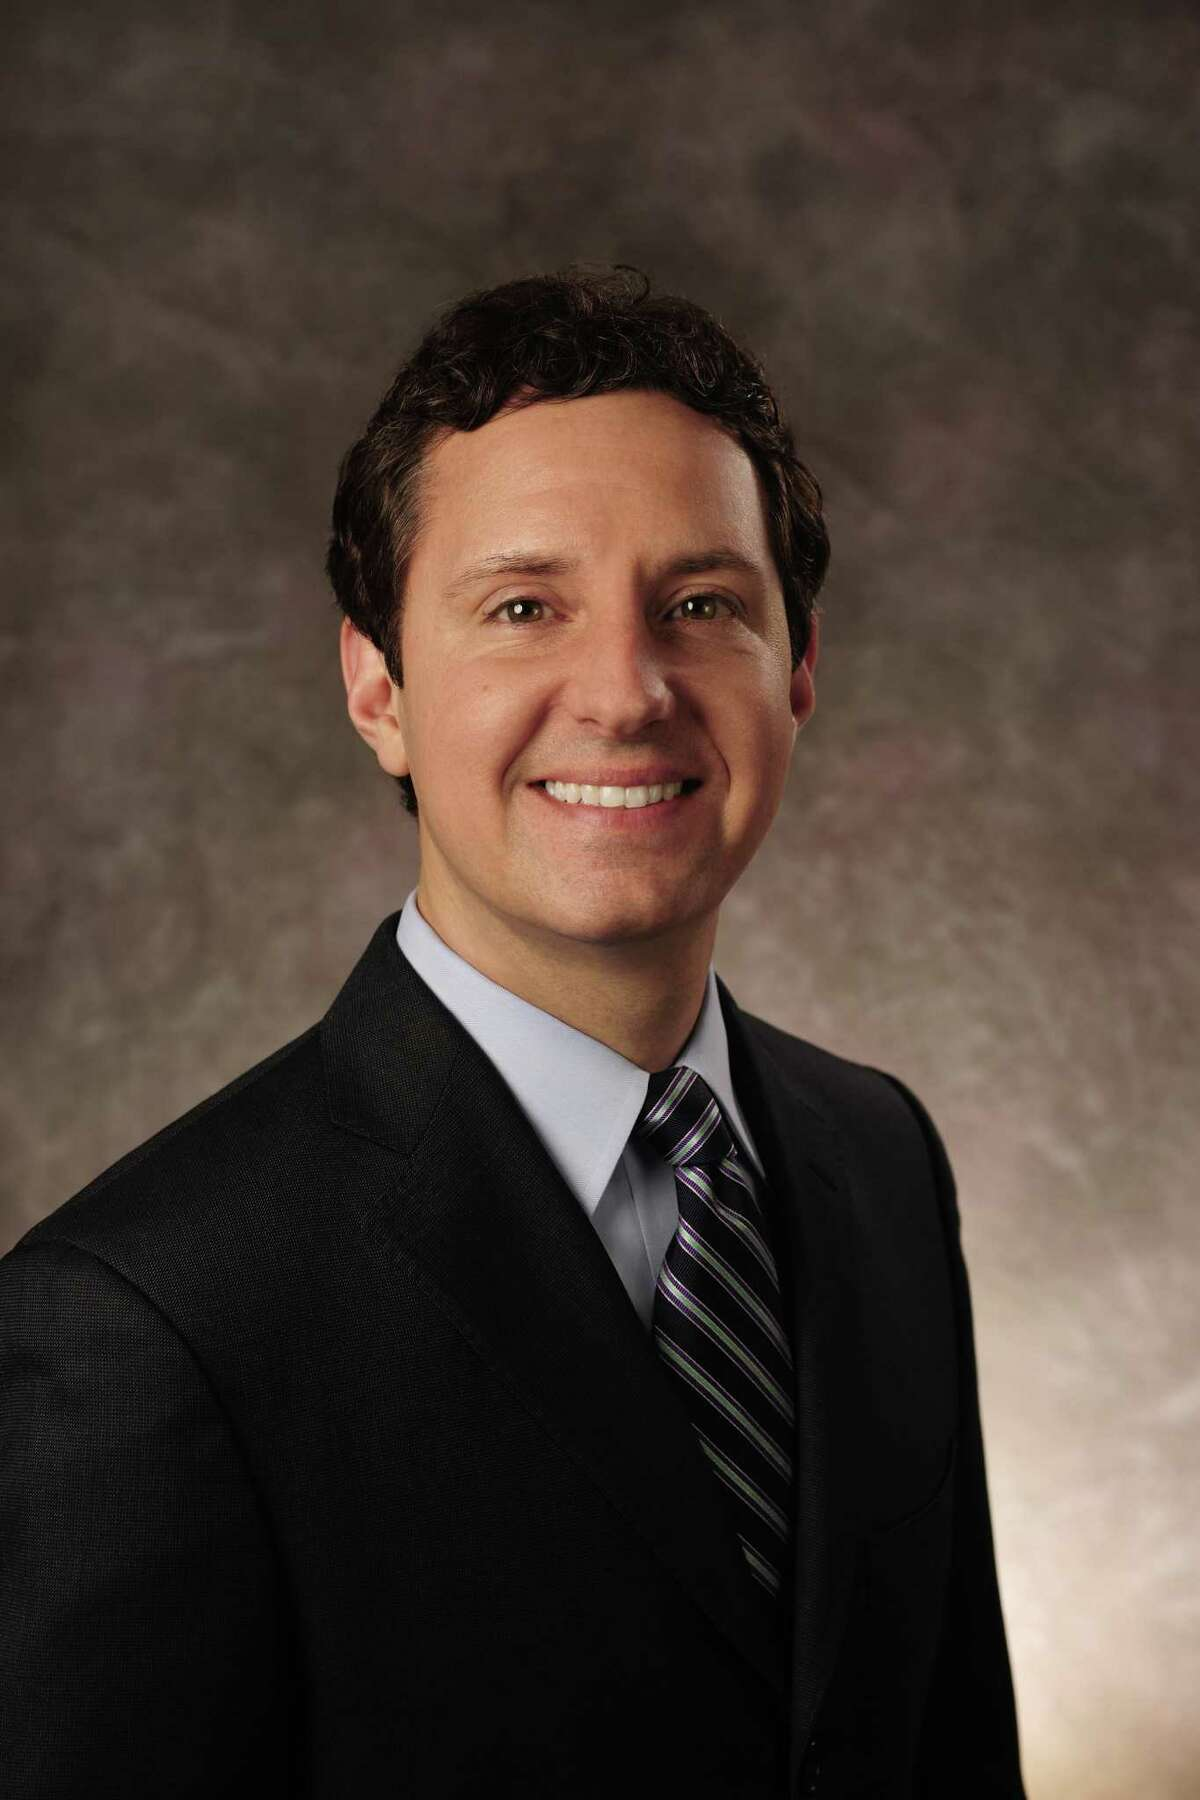 Andrew Catalon is CBS Sports Network's lead play-by-play announcer and also calls play-by-play for THE NFL ON CBS, NCAA Division I Men's Basketball Championship, college football and basketball, the Mastersr., PGA Championship, Arena Bowl, and U.S. Open Tennis Championships.